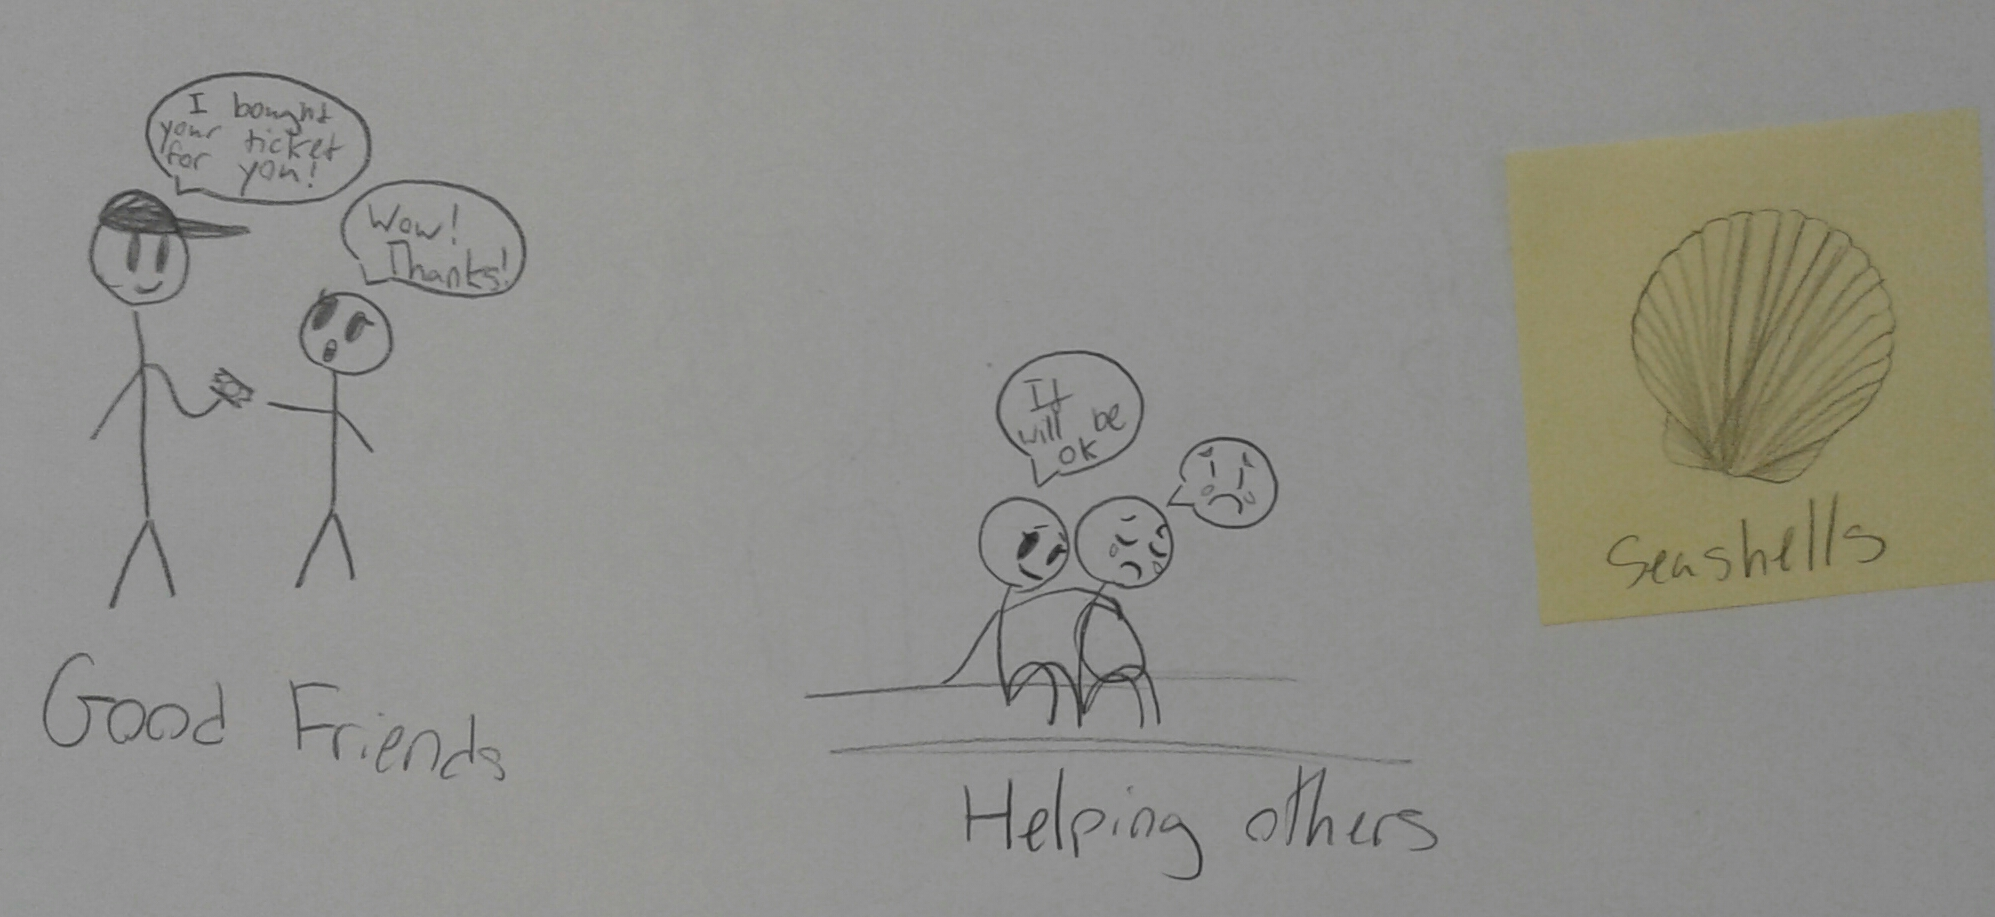 helping others.jpg